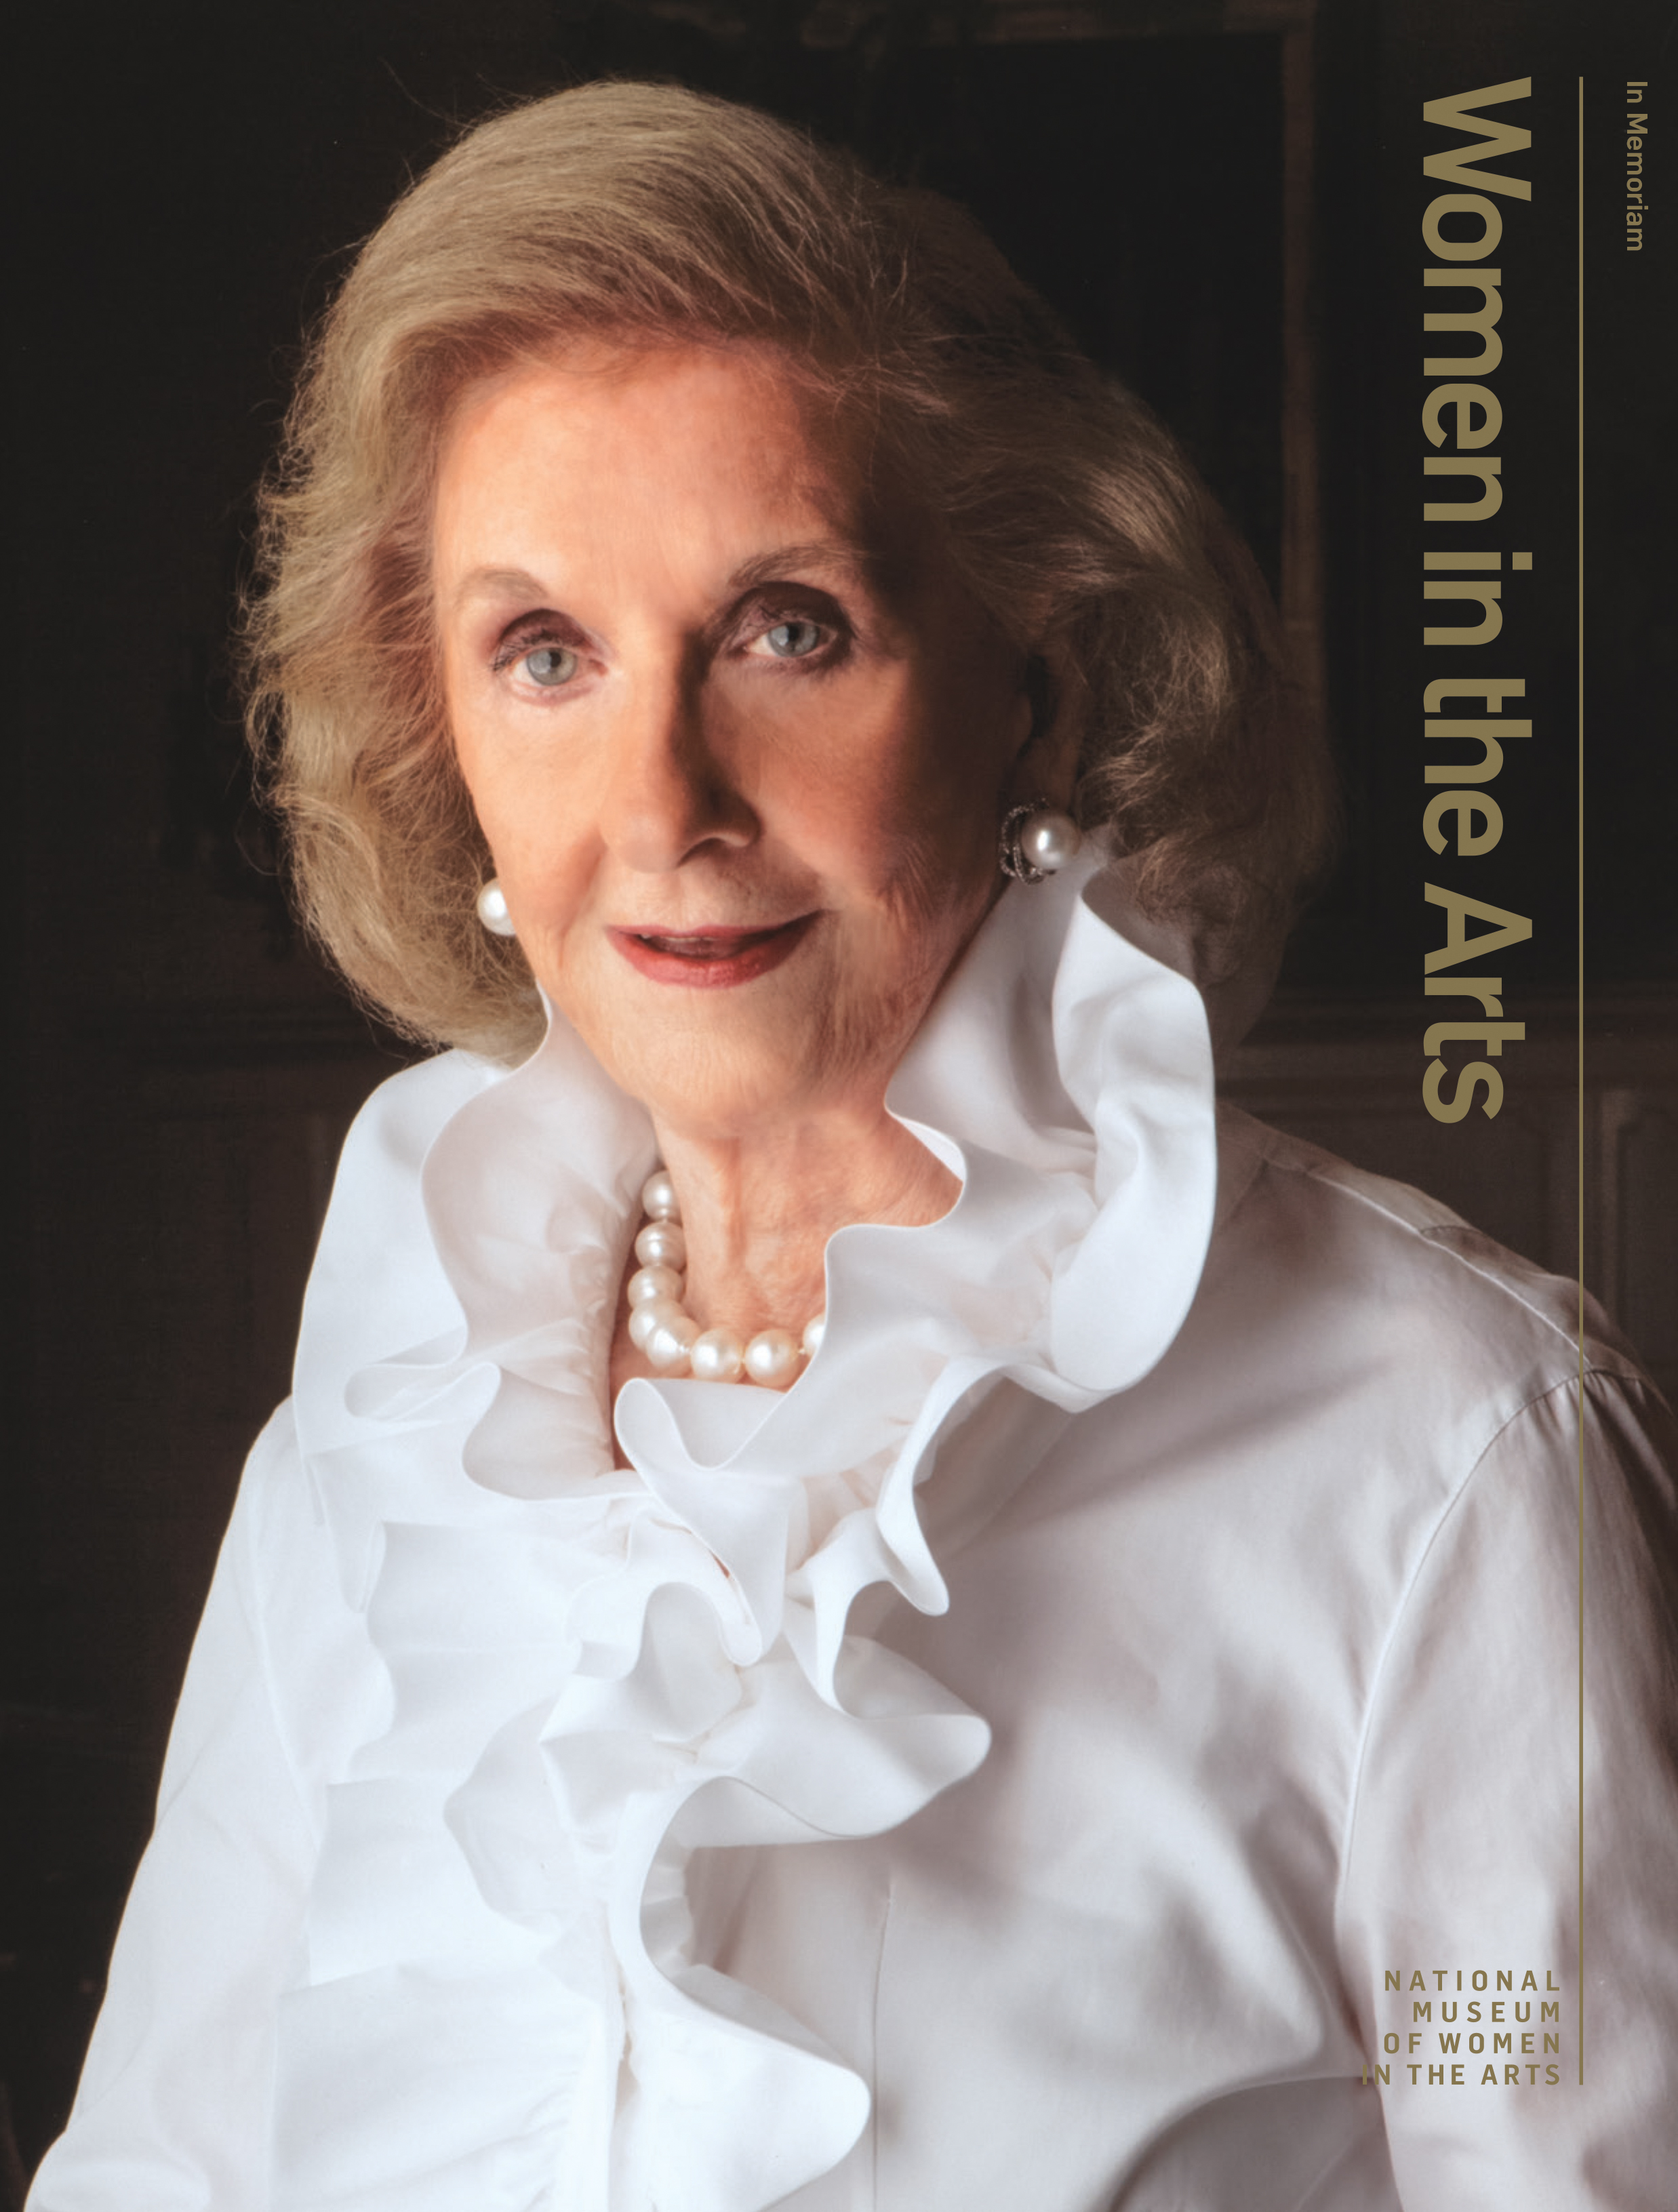 Cover of 'Women in the Arts' magazine featuring a professional portrait of Wilhelmina Cole Holladay. She is a light-skinned, older woman with a blonde bob. She wears an elegant white ruffled blouse and pearl jewelry.